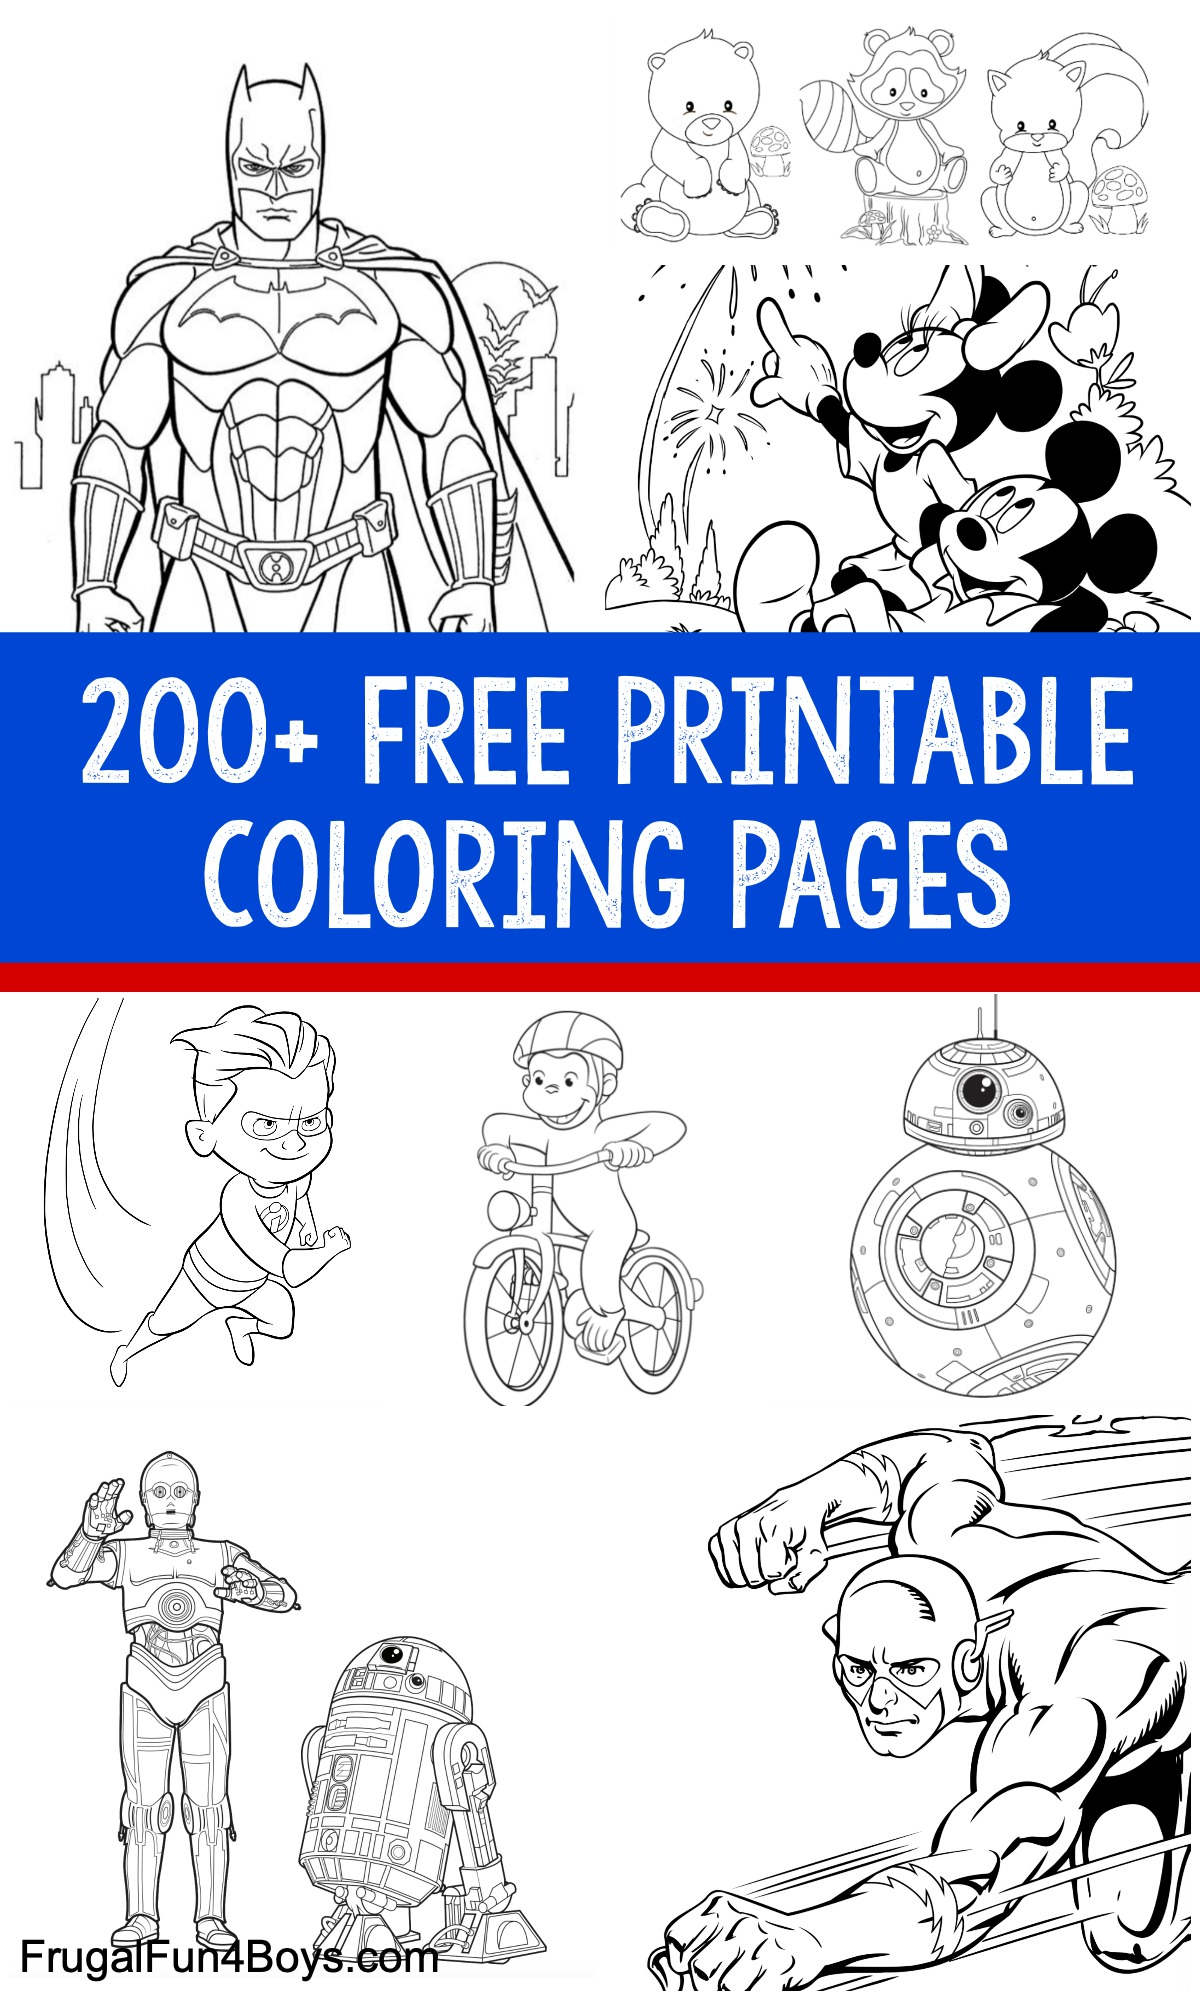 200+ Free Printable Coloring Pages